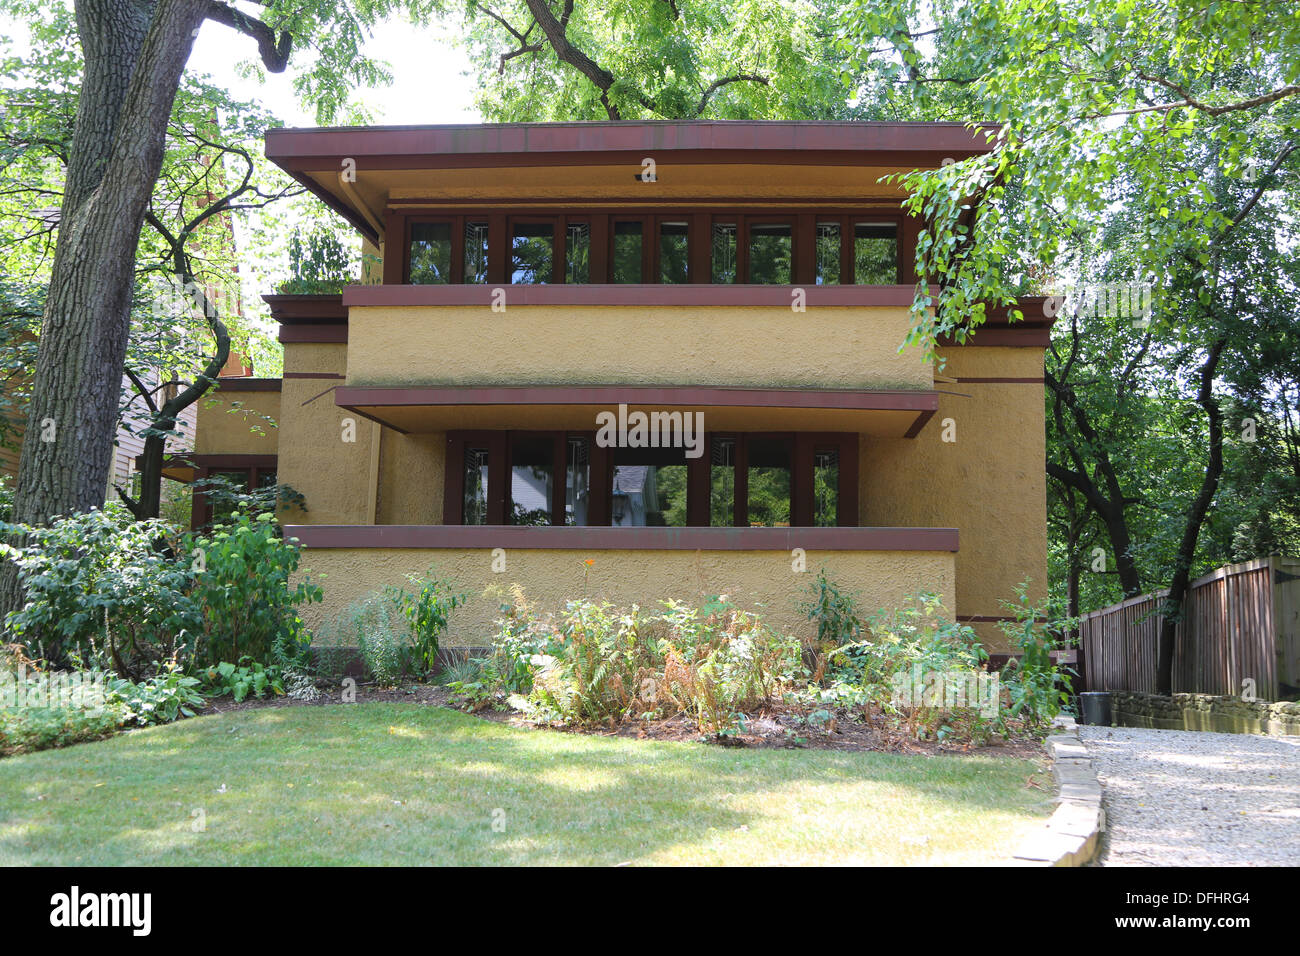 Frank lloyd wright laura gale house 1909 oak park il for Wright style